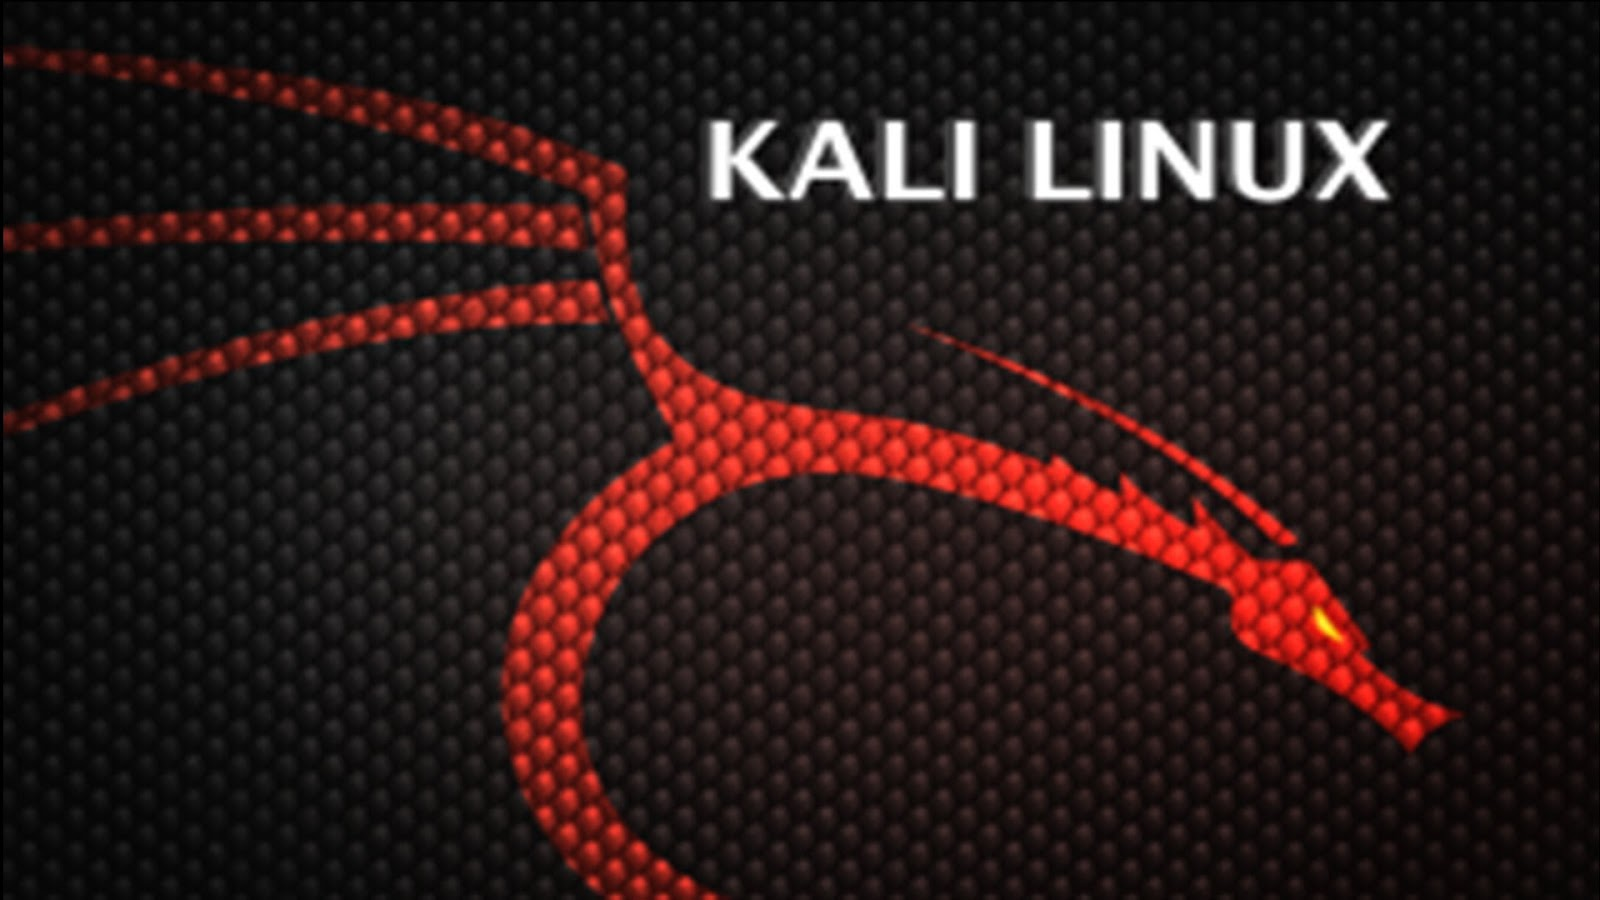 Instil Developers: How to install XDM Downloader on Kali Linux